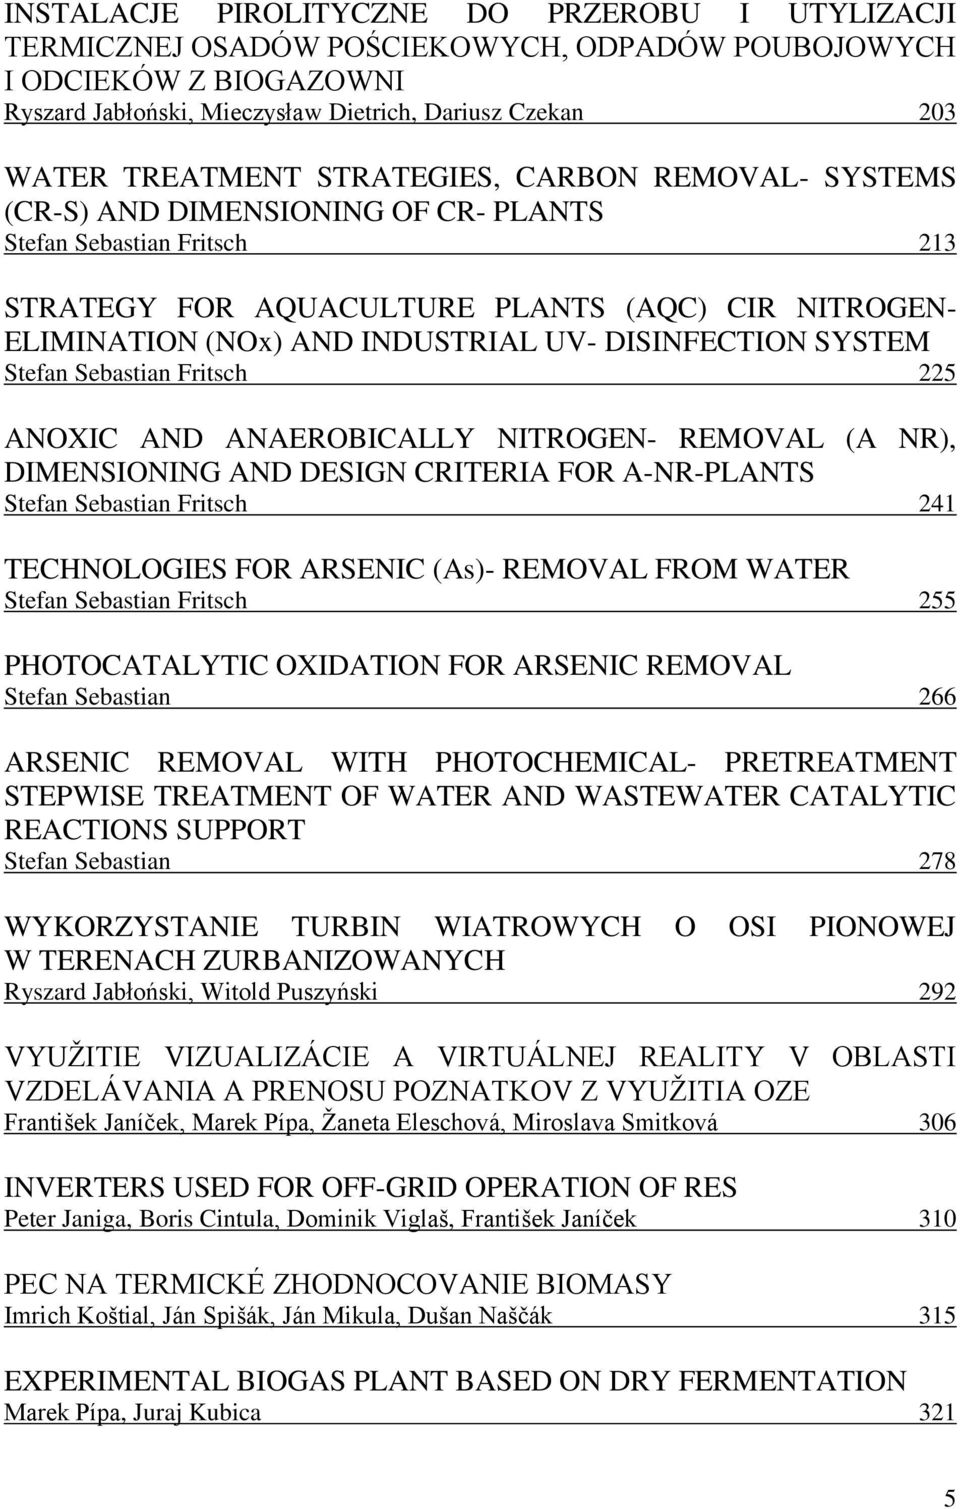 DISINFECTION SYSTEM Stefan Sebastian Fritsch 225 ANOXIC AND ANAEROBICALLY NITROGEN- REMOVAL (A NR), DIMENSIONING AND DESIGN CRITERIA FOR A-NR-PLANTS Stefan Sebastian Fritsch 241 TECHNOLOGIES FOR